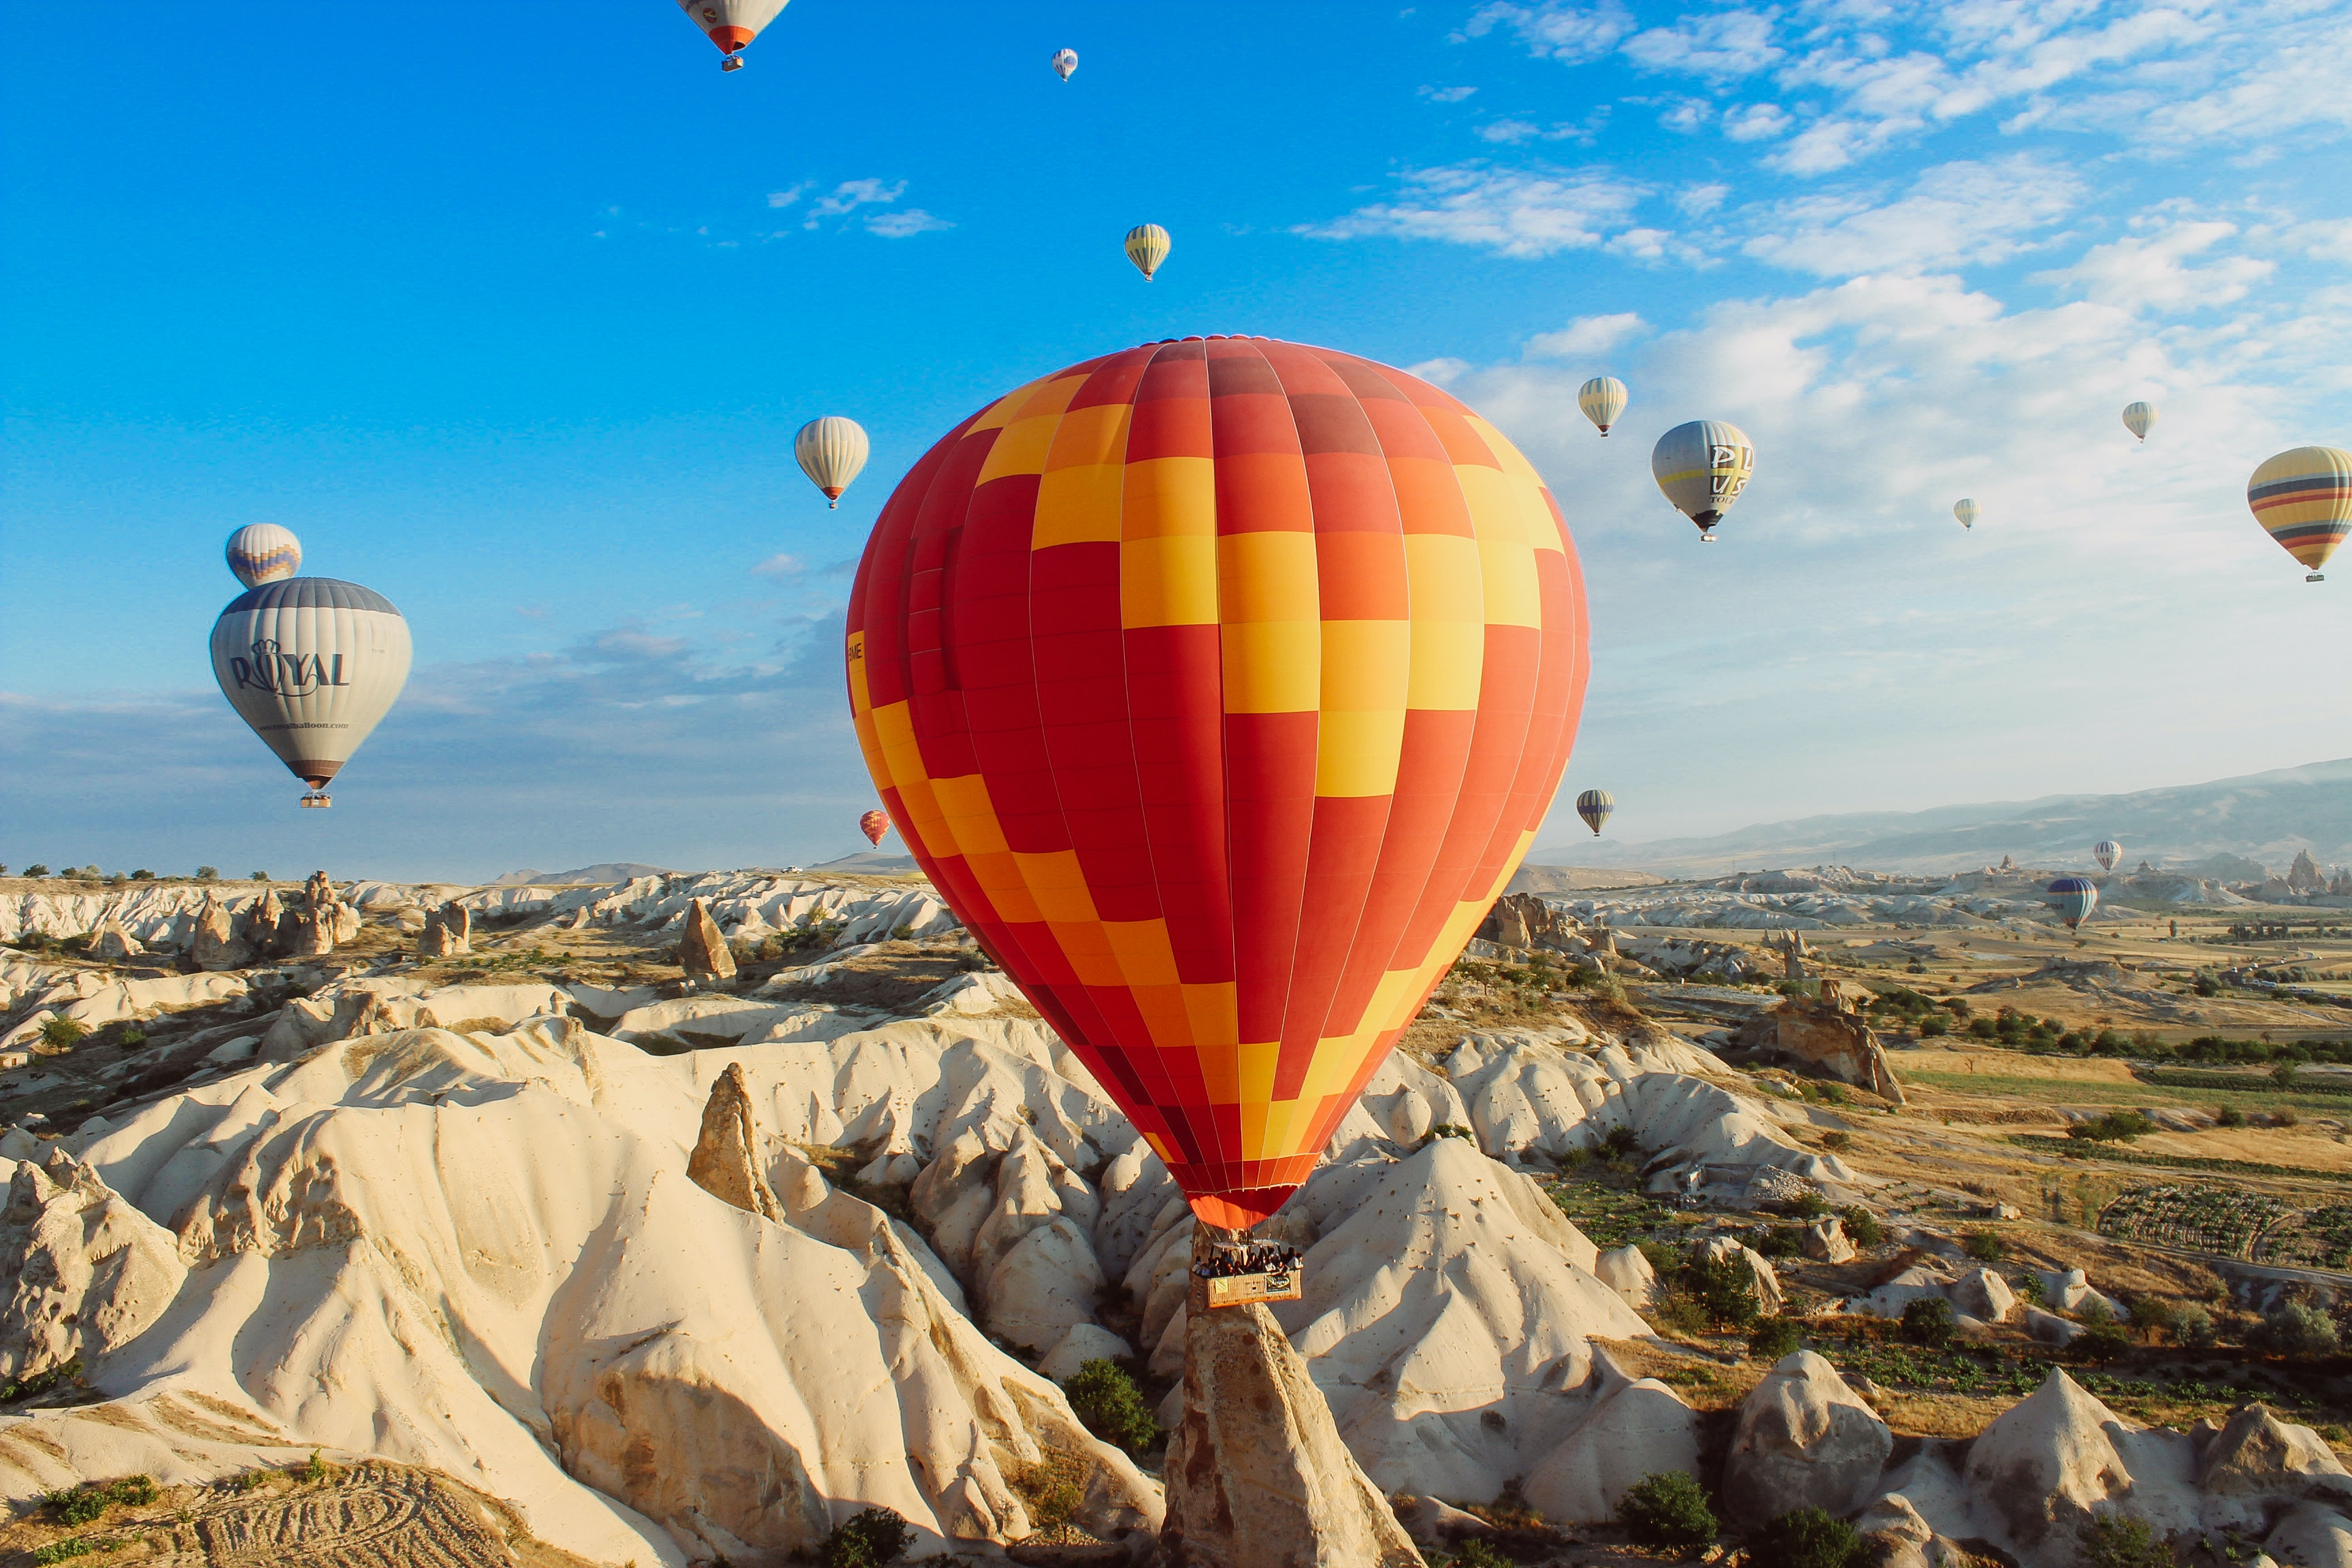 Colorful hot air balloons fly and float over a desert landscape